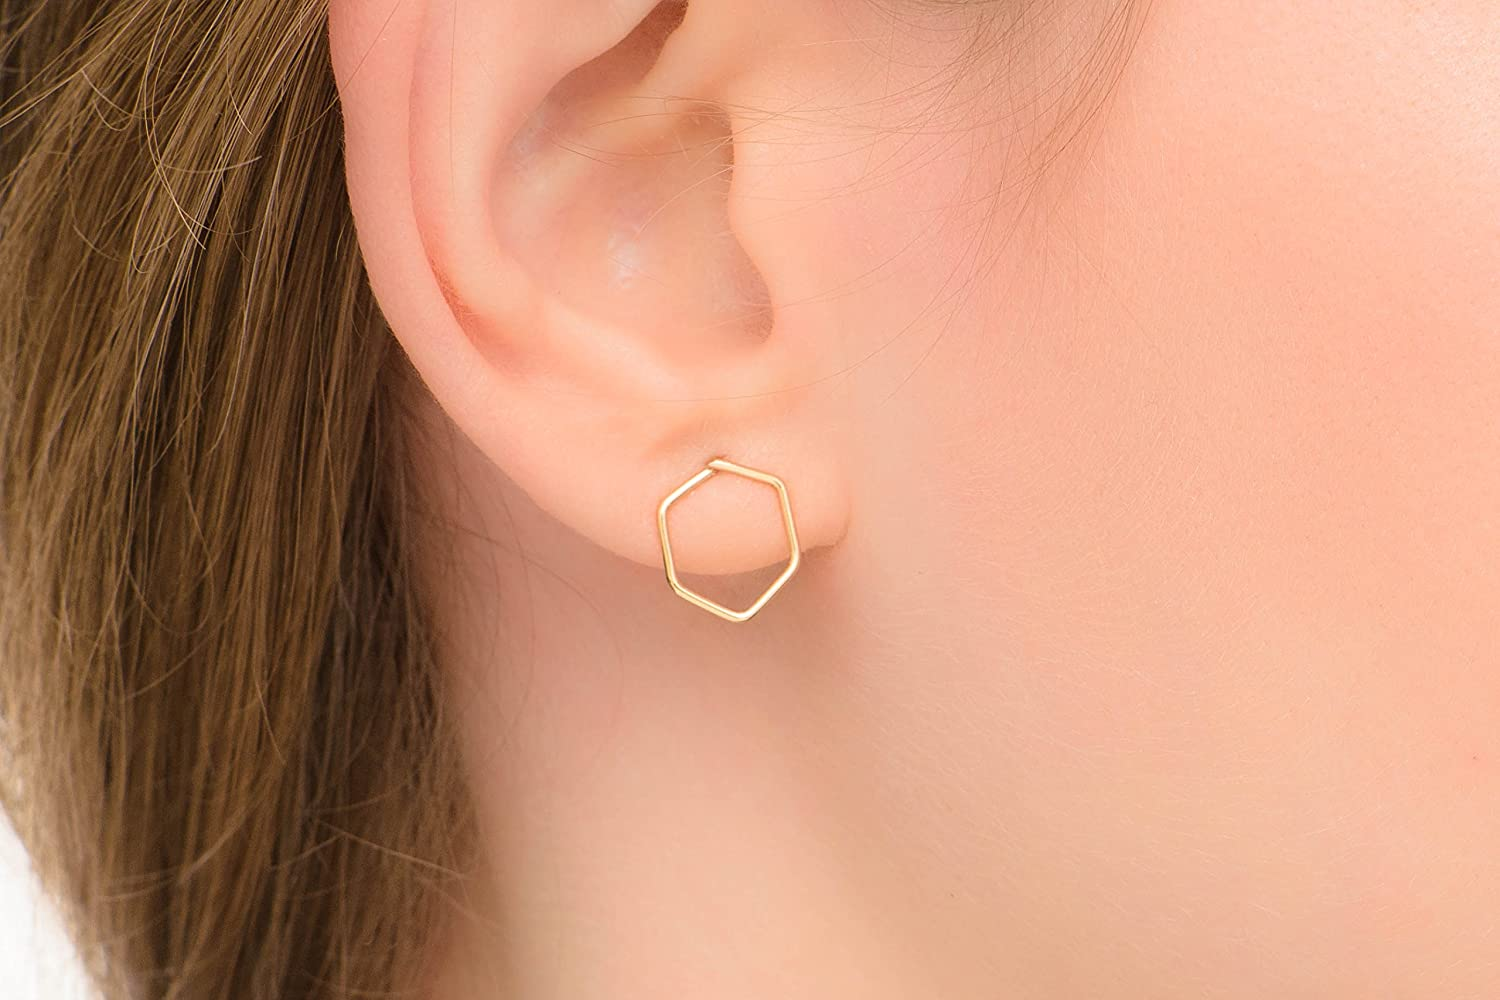 Hexagon Earrings Geometric Big Studs 14k Gold Filled Handmade